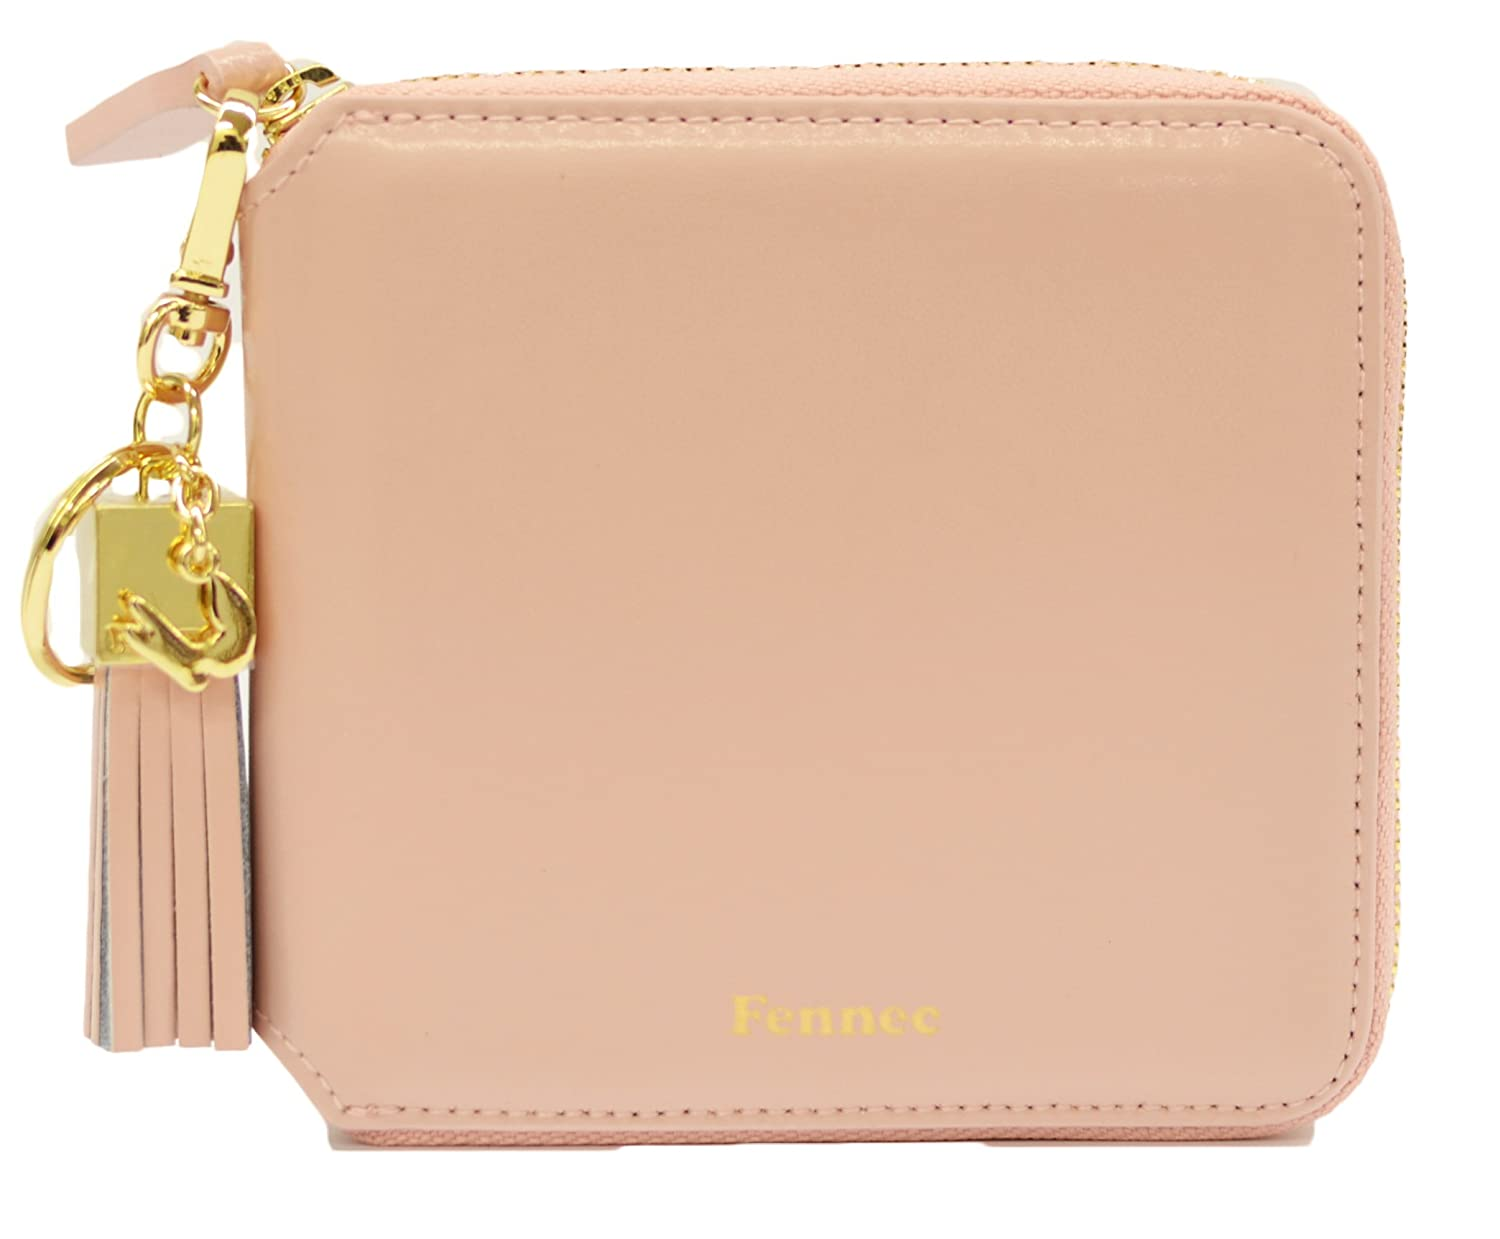 Fennec Zipper Wallet Square Tassel フェネック 二つ折り財布 コインケース付き 【Fennec OFFICIAL】 B0765N4GTX ライトピンク ライトピンク